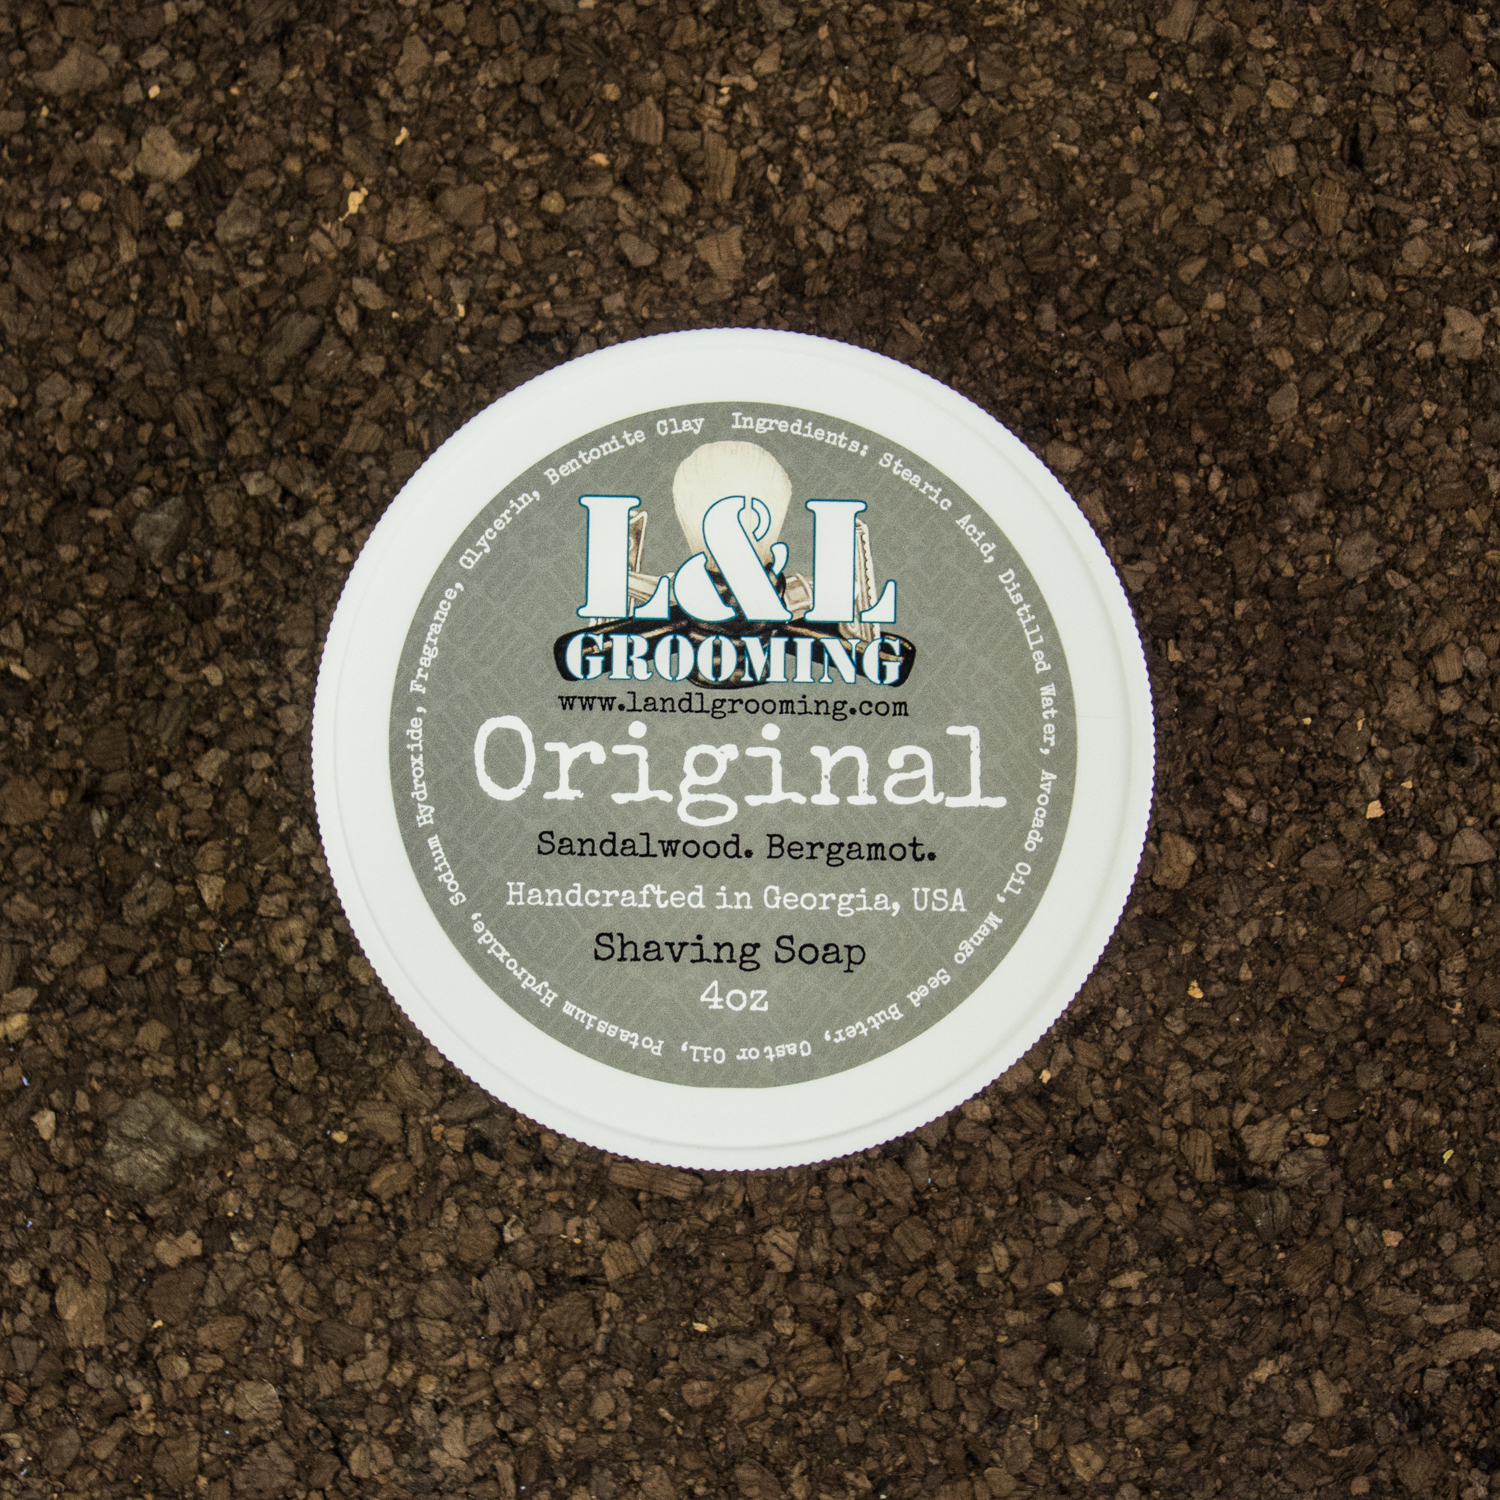 Declaration Grooming - Original - Soap (Vegan) image